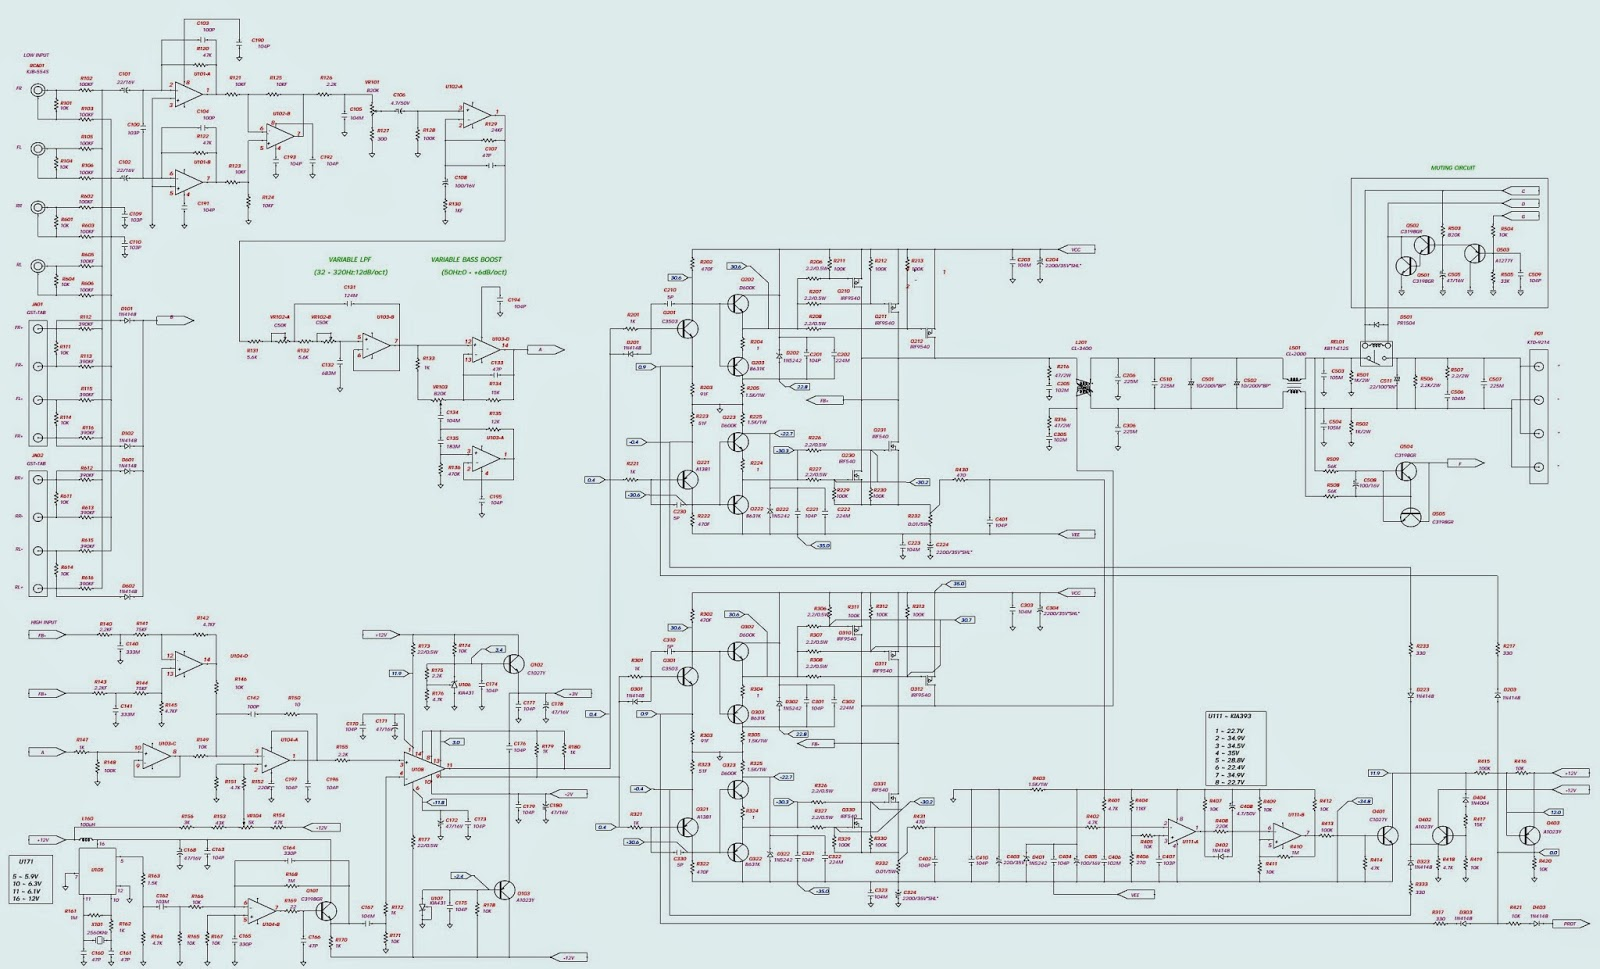 Jbl Car Stereo Wiring Diagram : Bp jbl schematic circuit diagram wiring